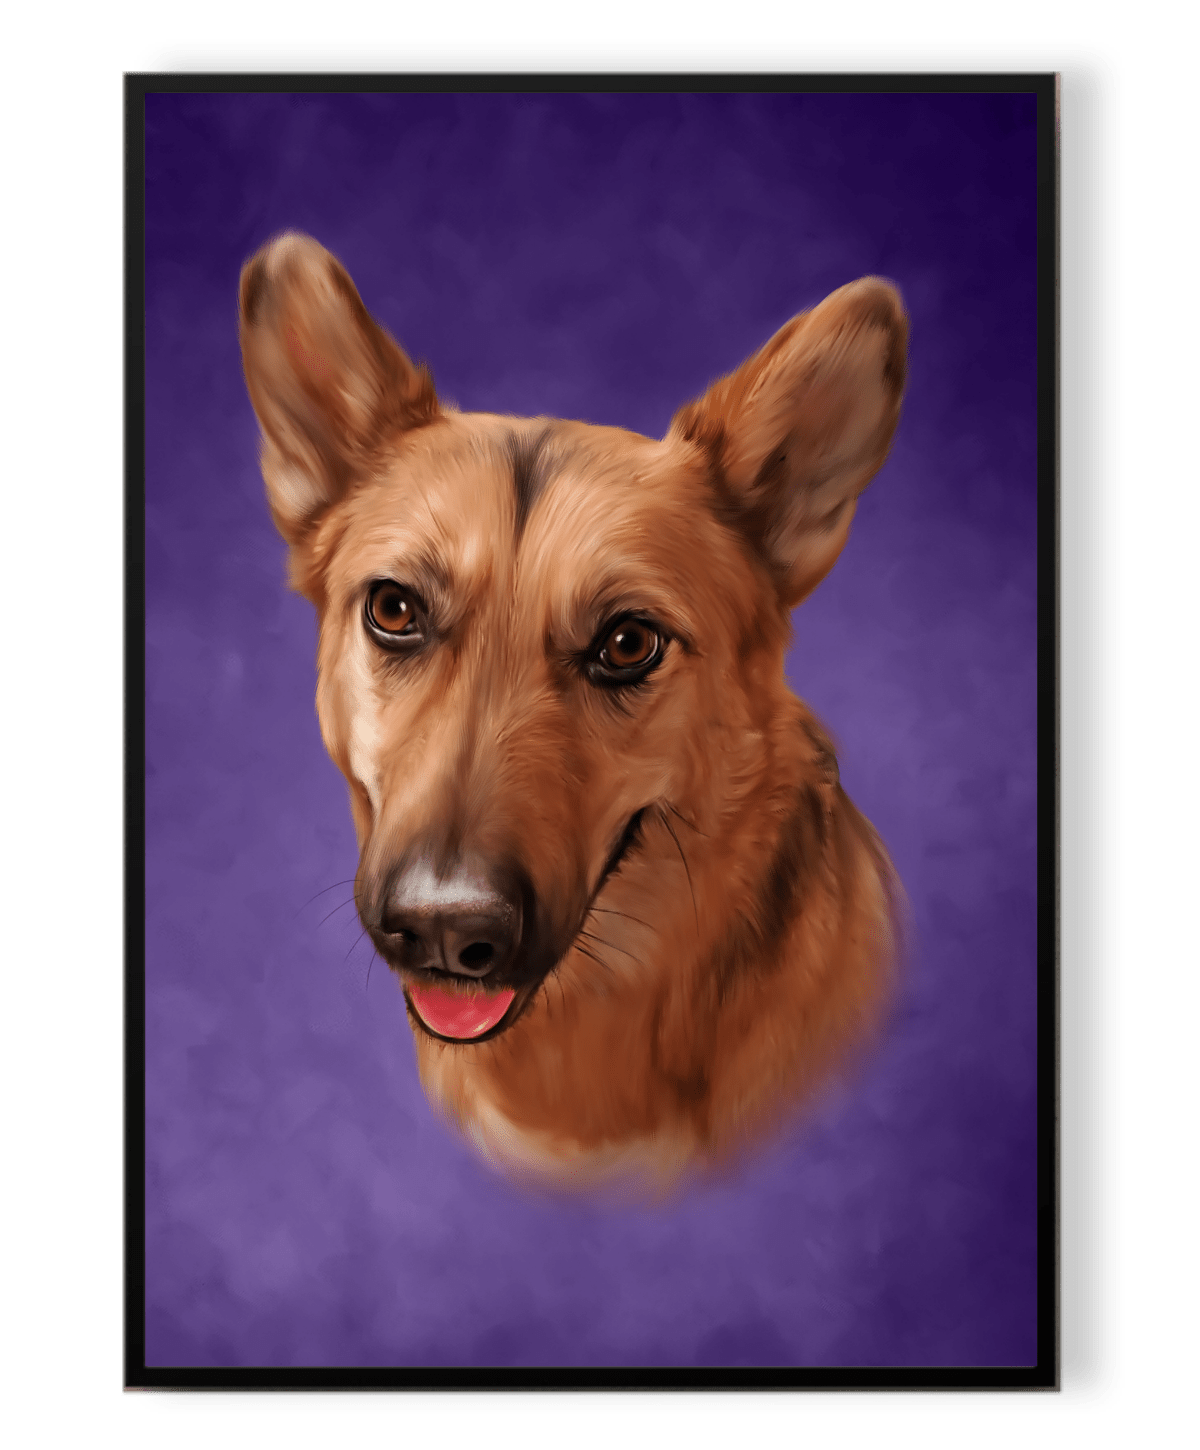 One dog on inside a frame with purple background